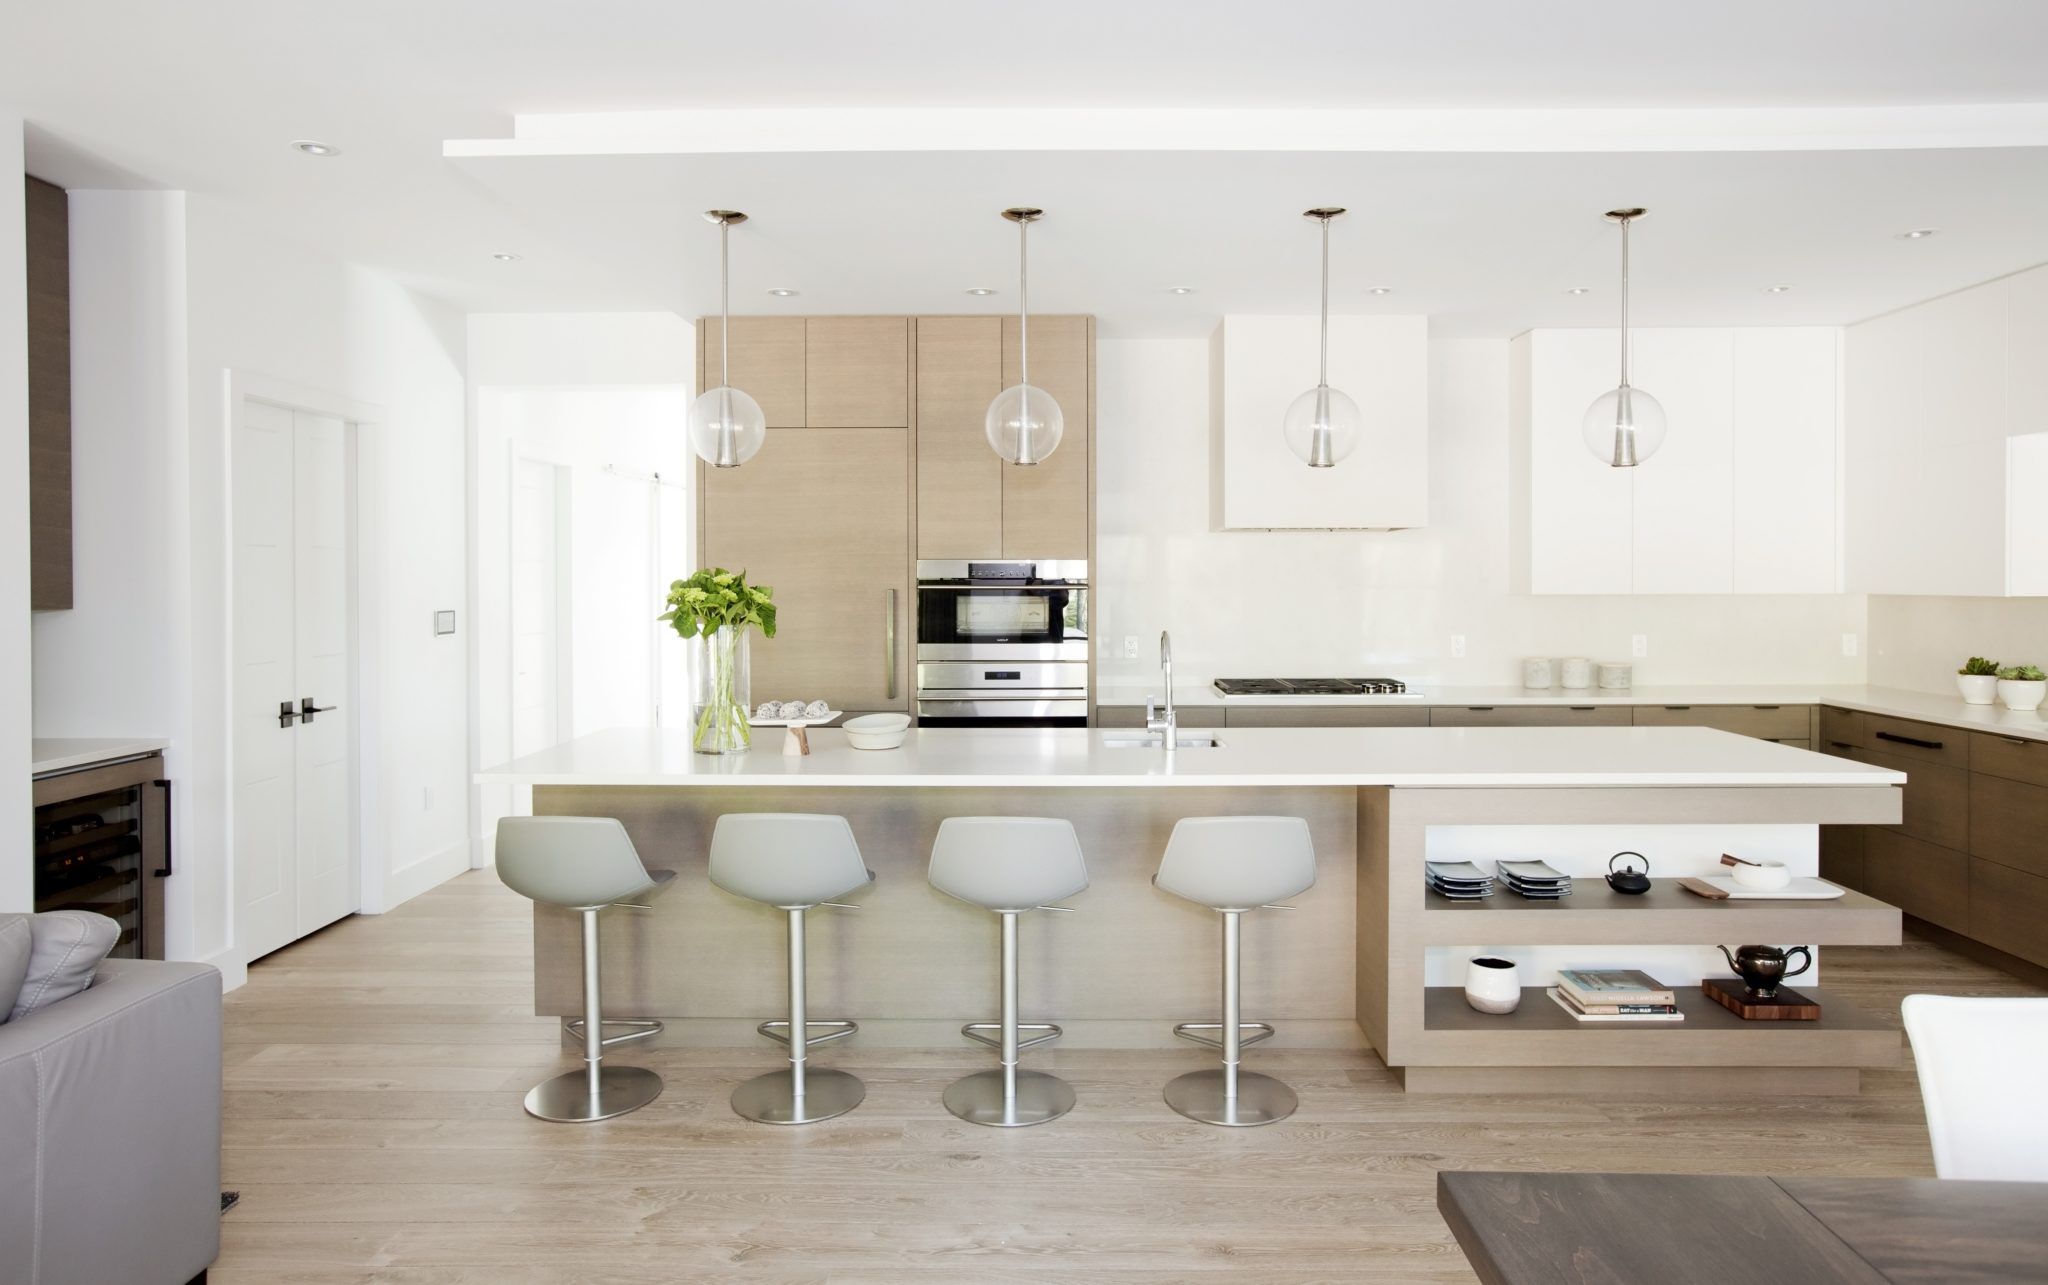 A bright and airy kitchen by Stephanie Brown Inc.